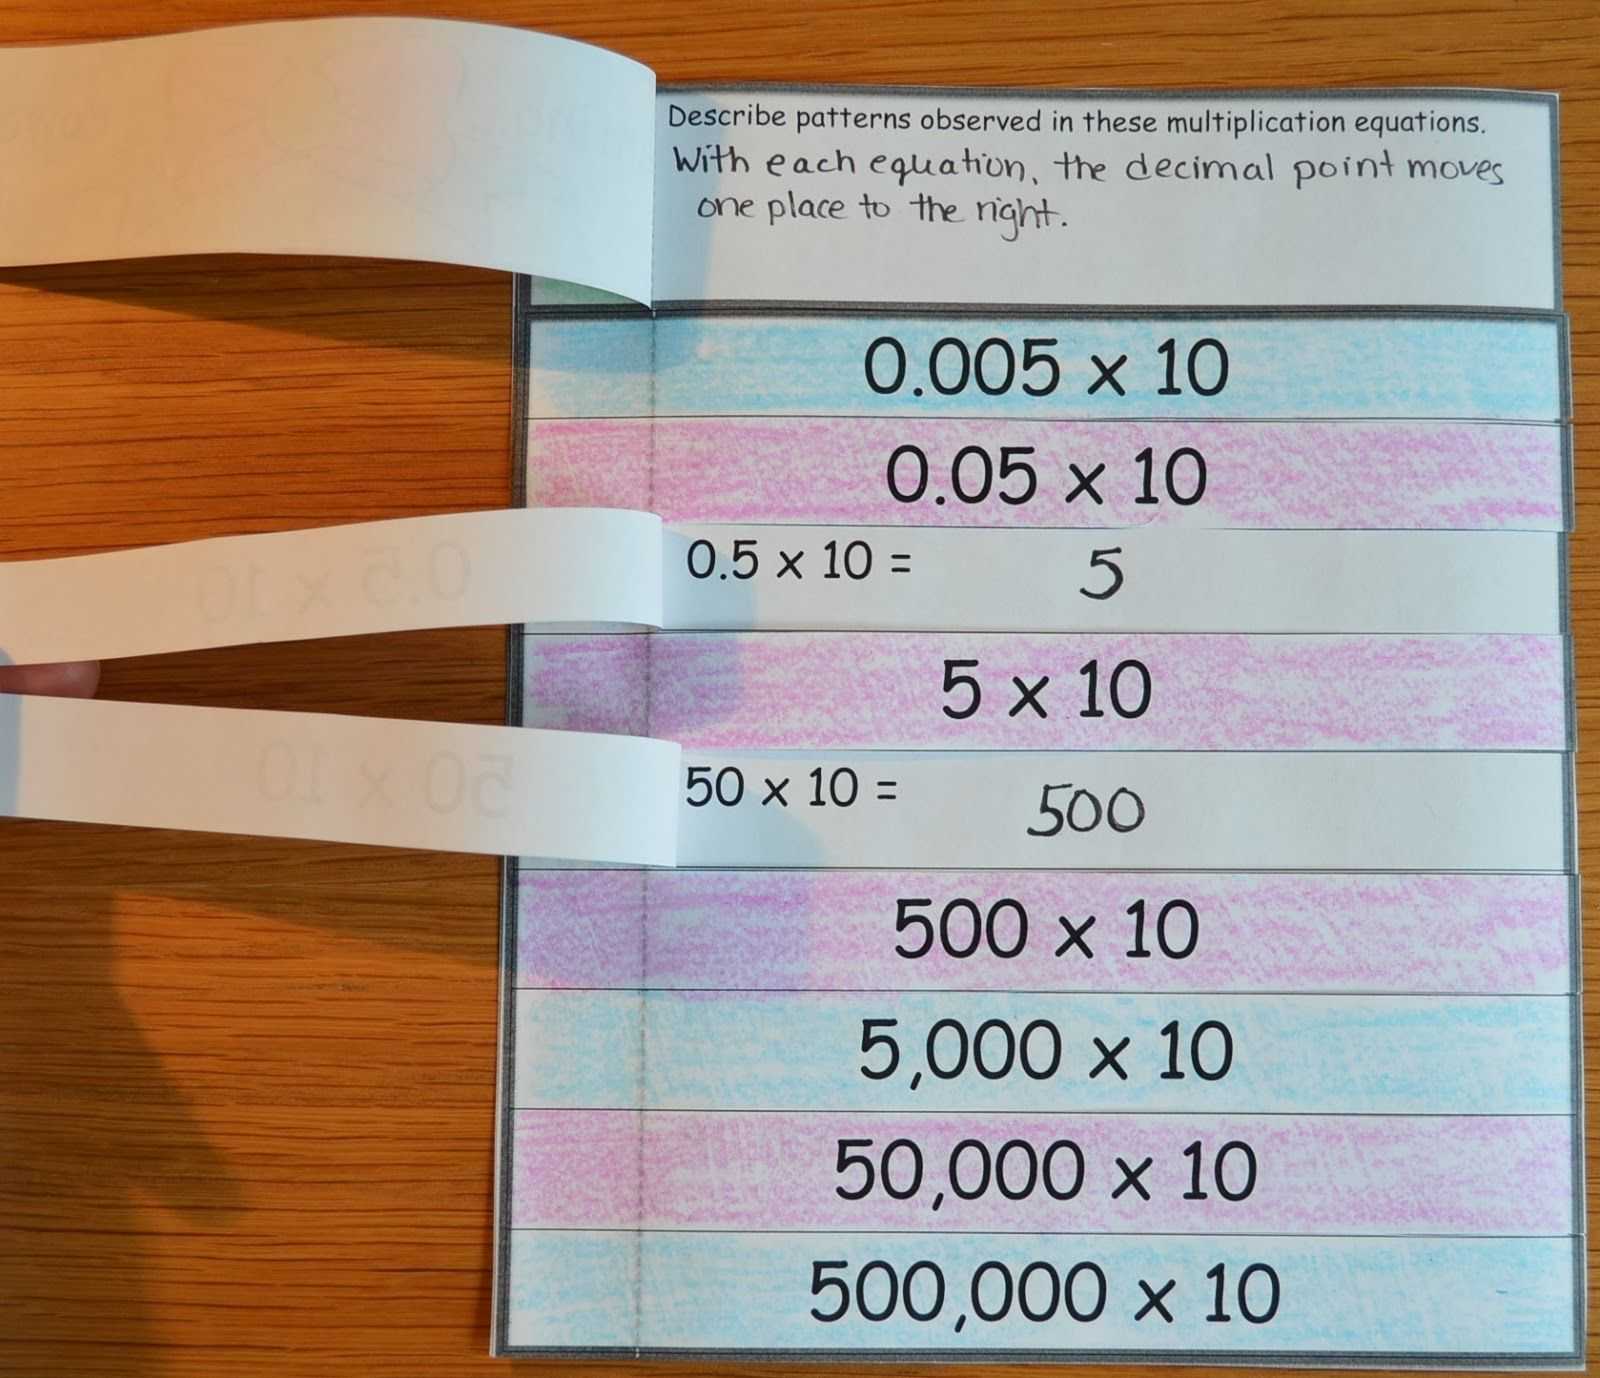 medium resolution of powers of 10 flap books use to investigate what happens when a number is either multiplied or divided by 10 again and again place in math notebook if